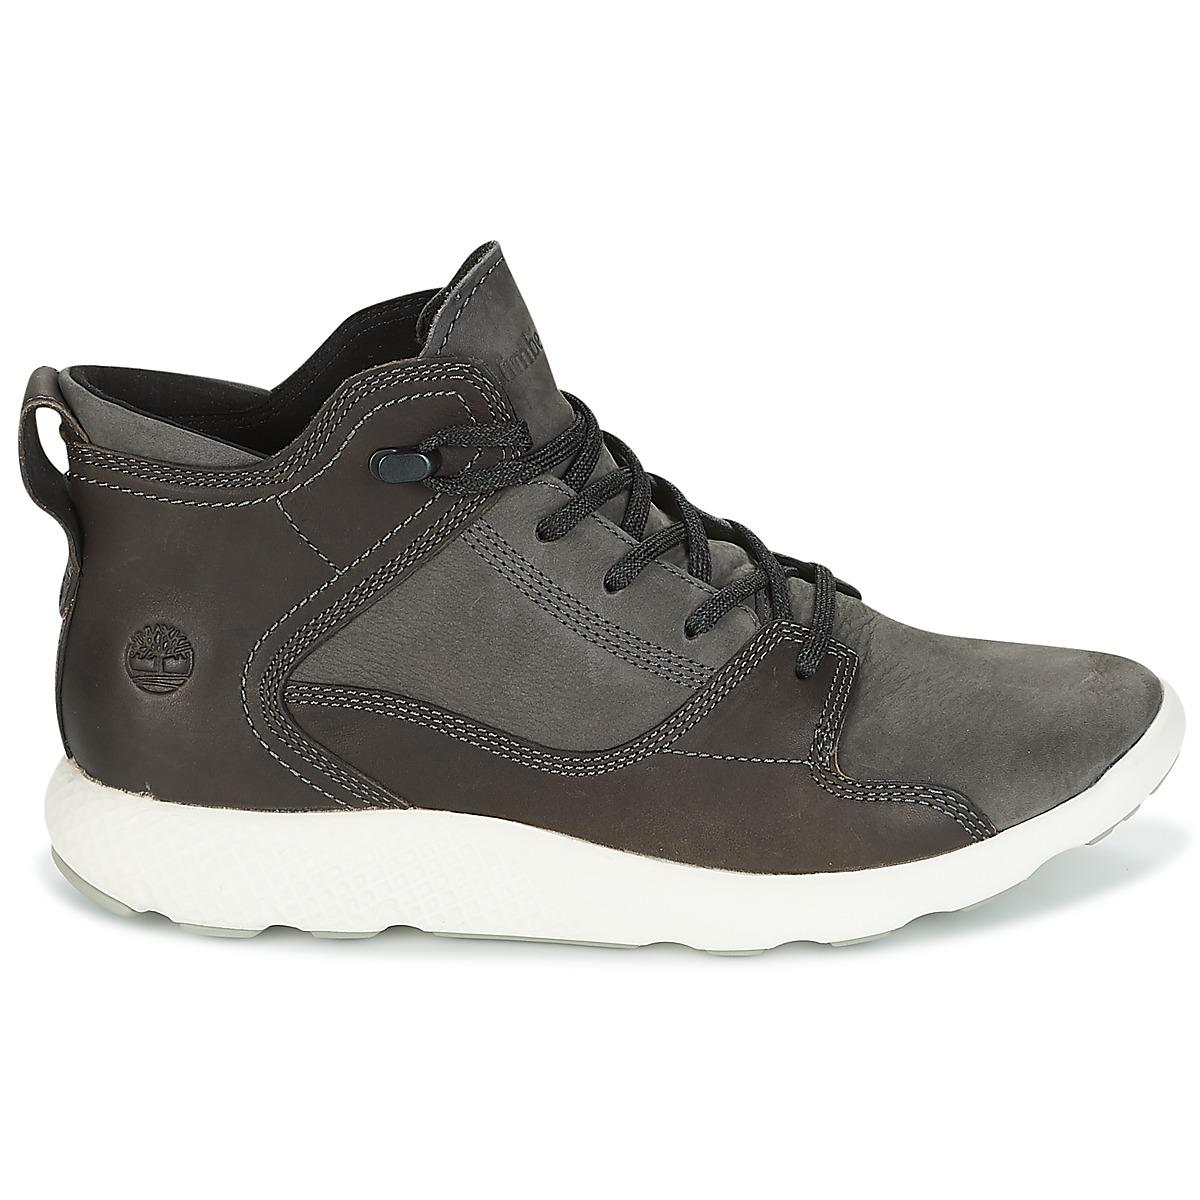 Timberland - Black Flyroam Leather Hiker Shoes (high-top Trainers) for Men  -. View fullscreen 97ab974892